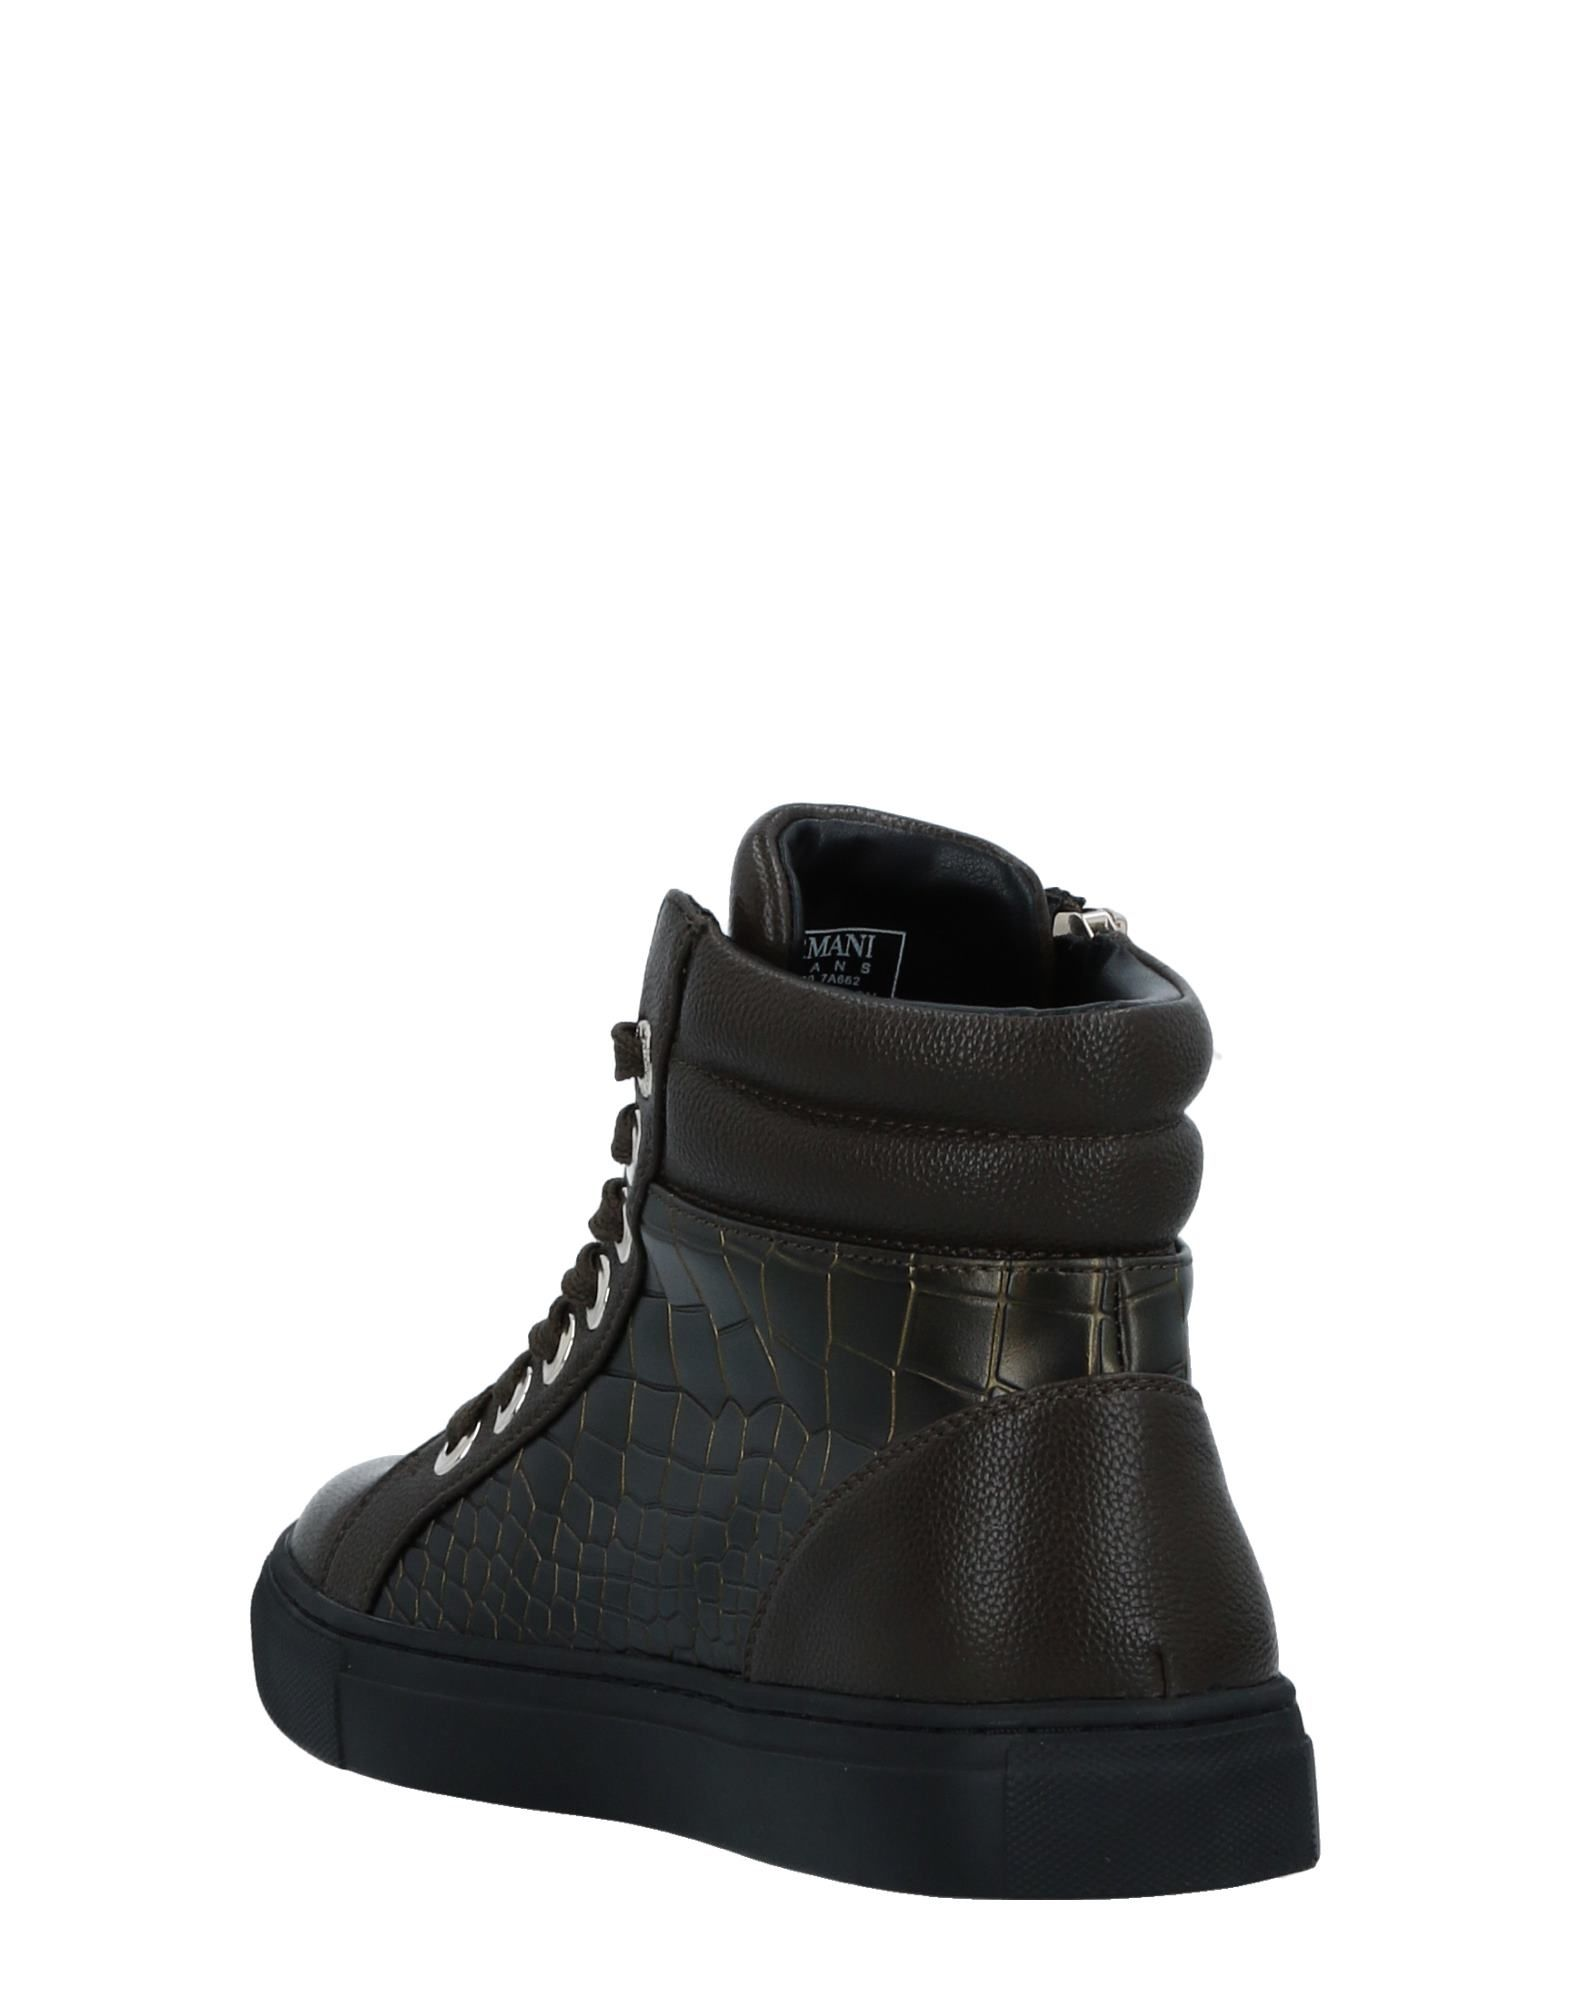 Sneakers Armani Jeans Donna - 11515705TL